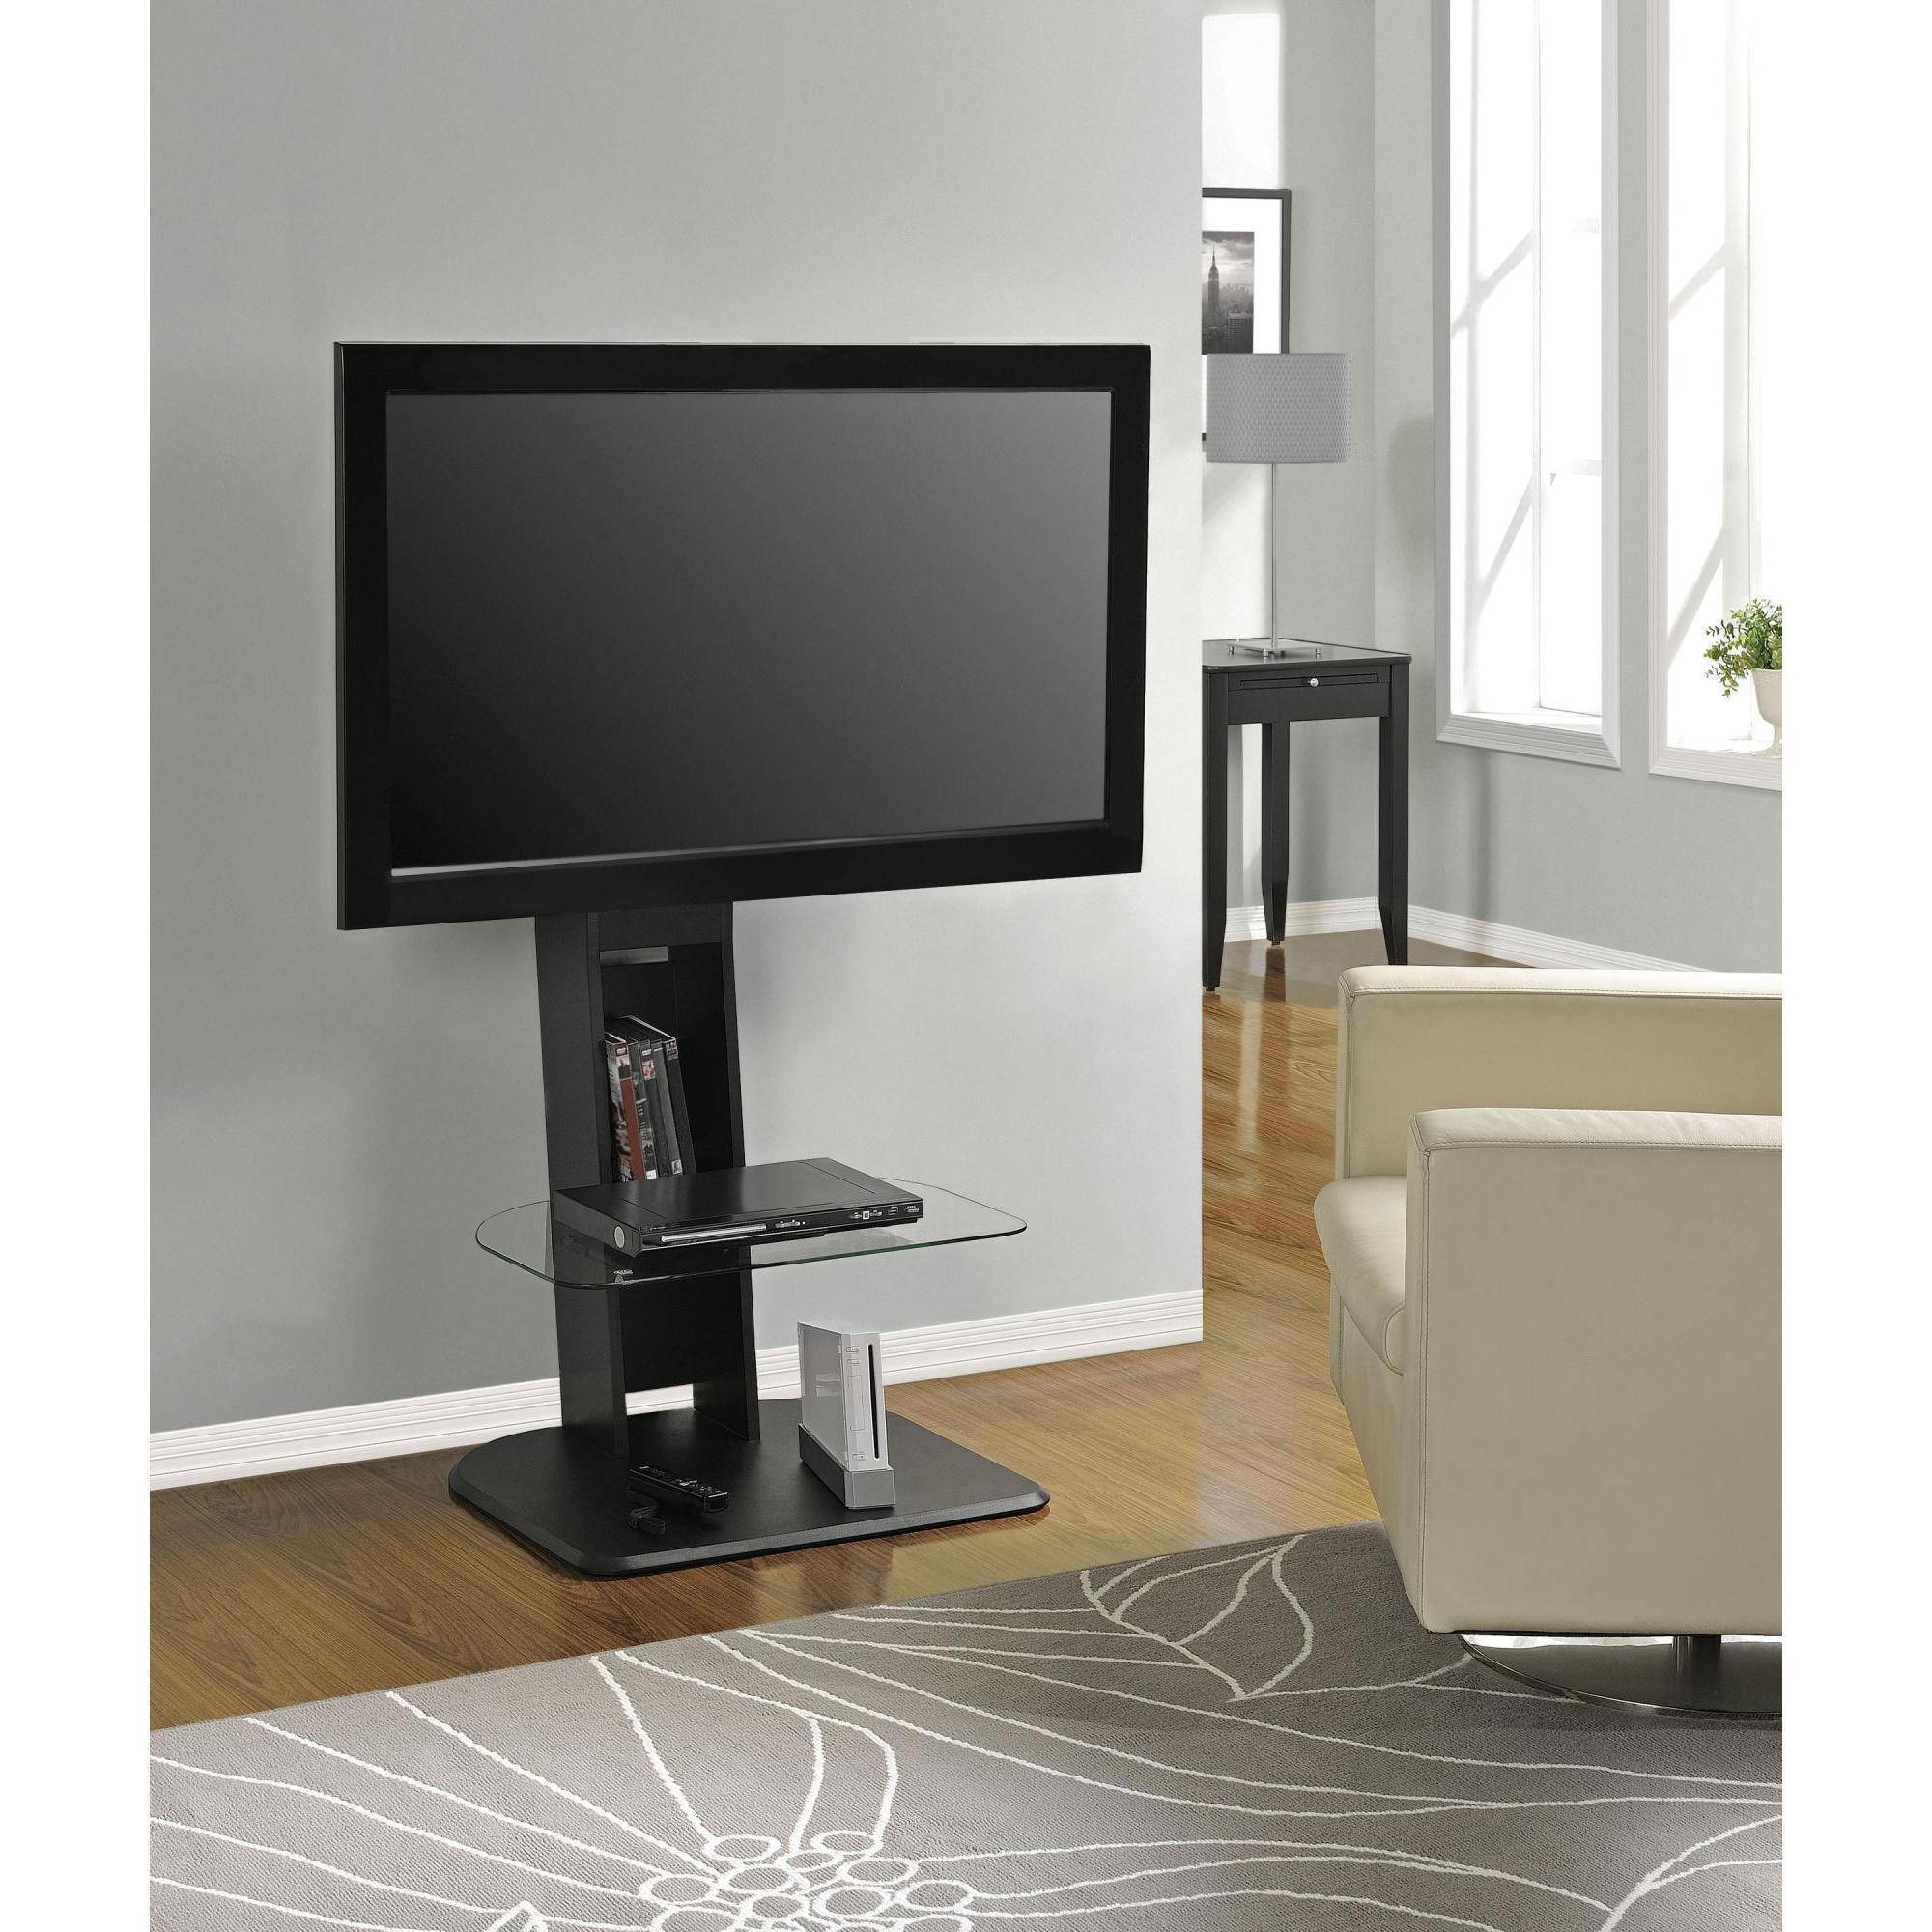 Atlantic Furniture Tabletop Tv Stand, Black - Walmart for 50 Inch Corner Tv Cabinets (Image 3 of 15)